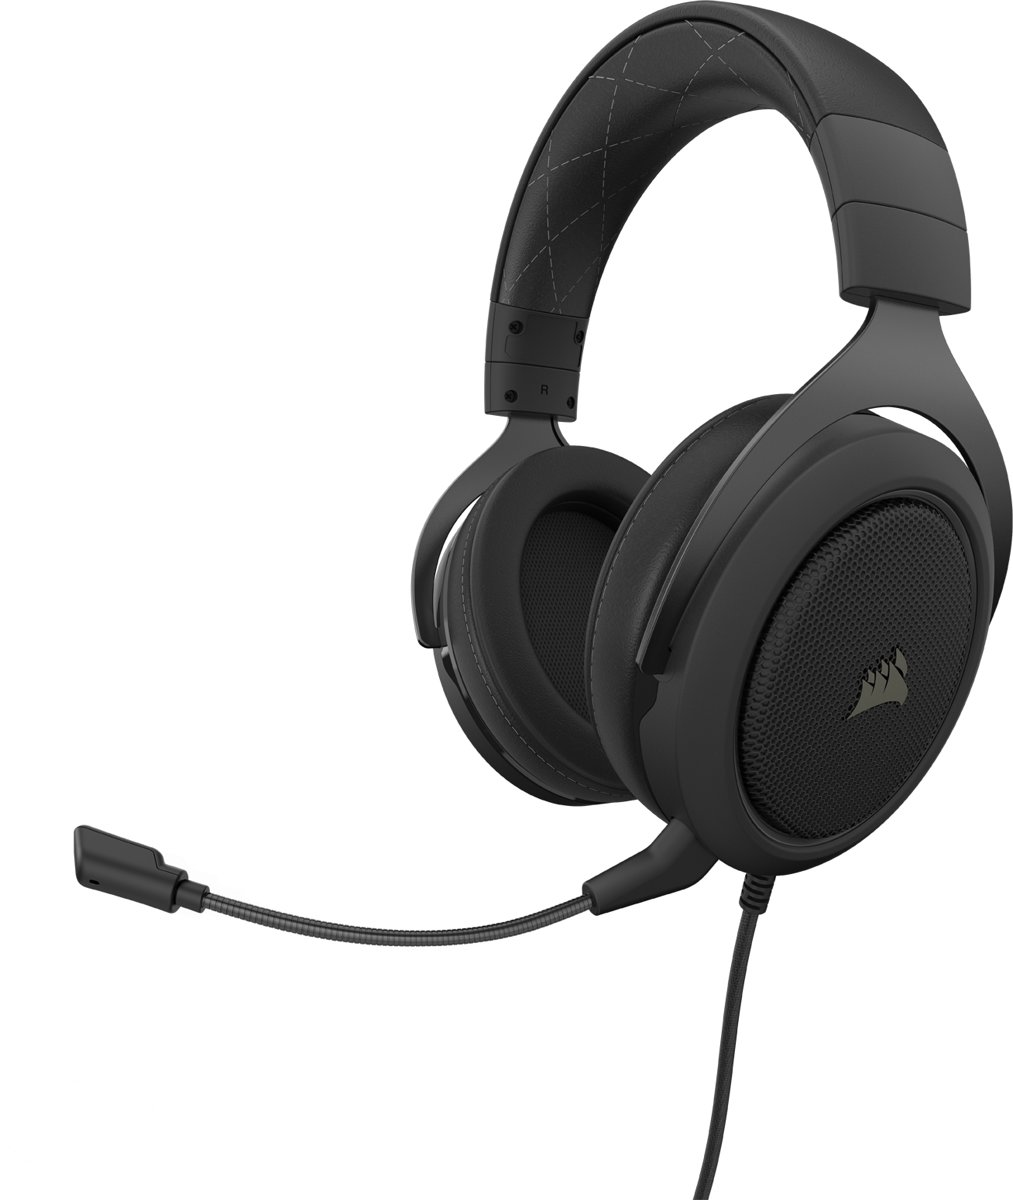 Corsair HS60 Pro Surround Gaming Headset - Zwart/Carbon - PS4 + Xbox One + PC + Switch